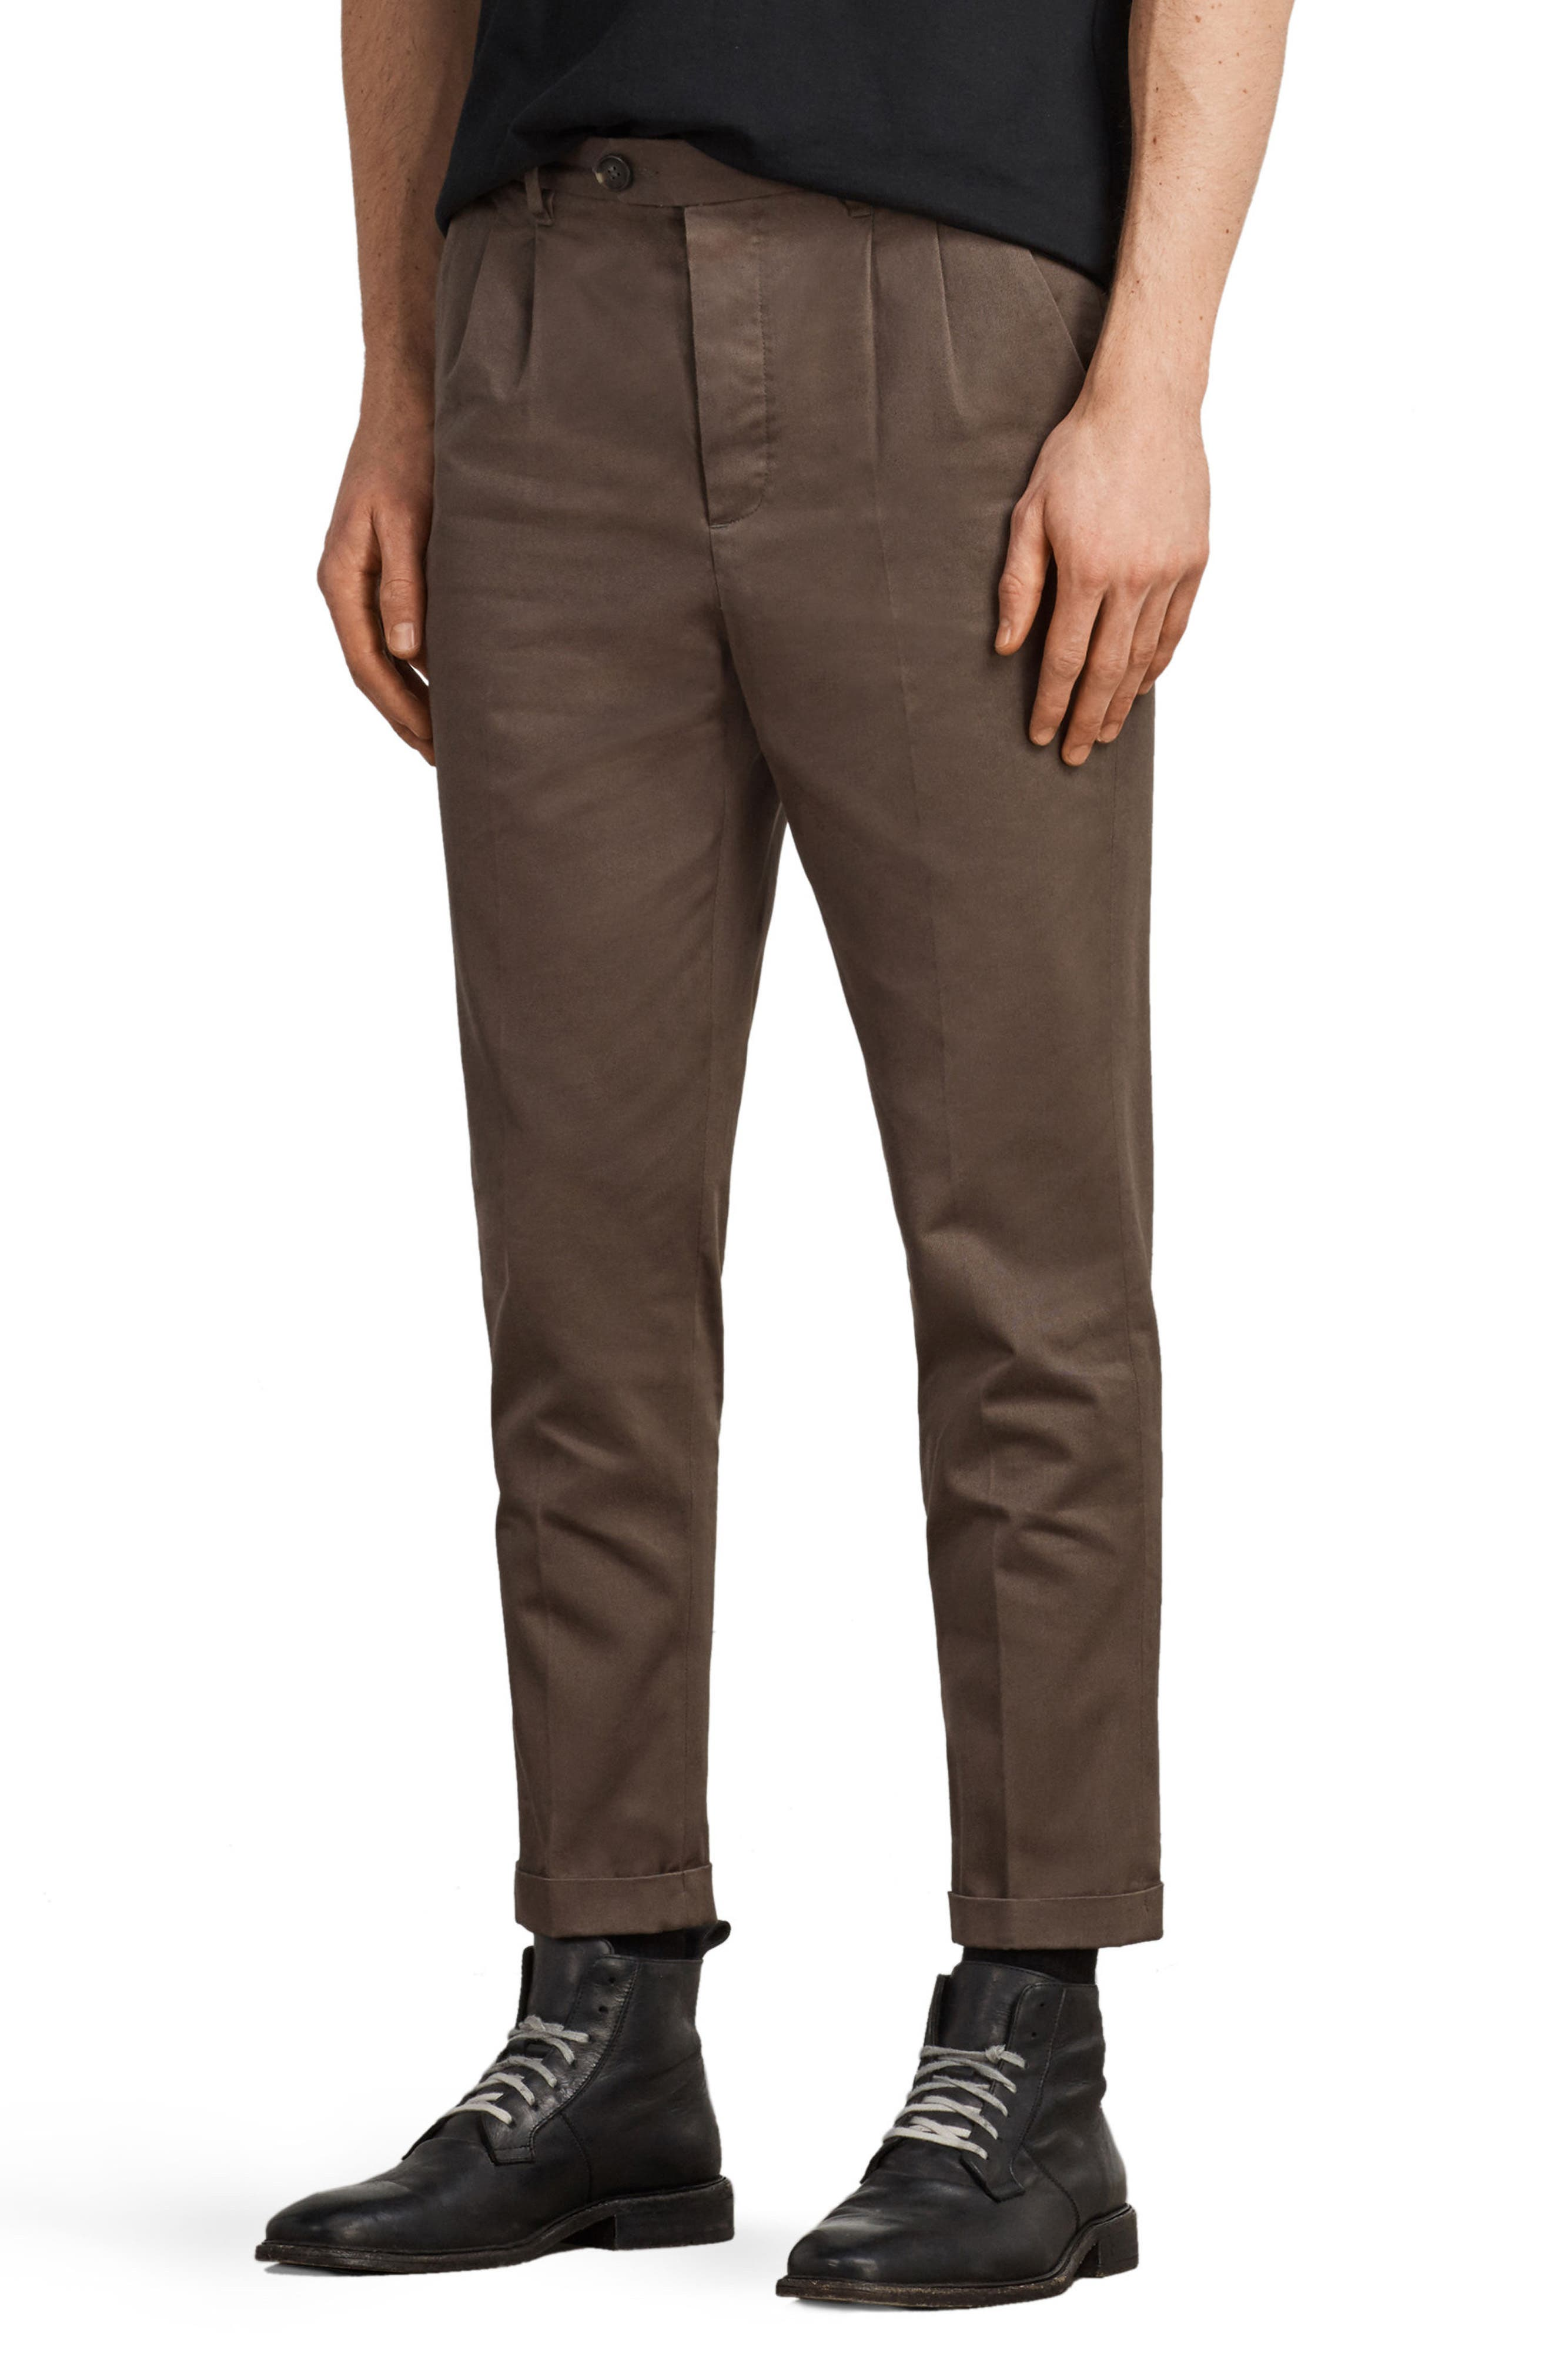 Salco Slim Fit Chino Pants,                             Alternate thumbnail 3, color,                             Khaki Green